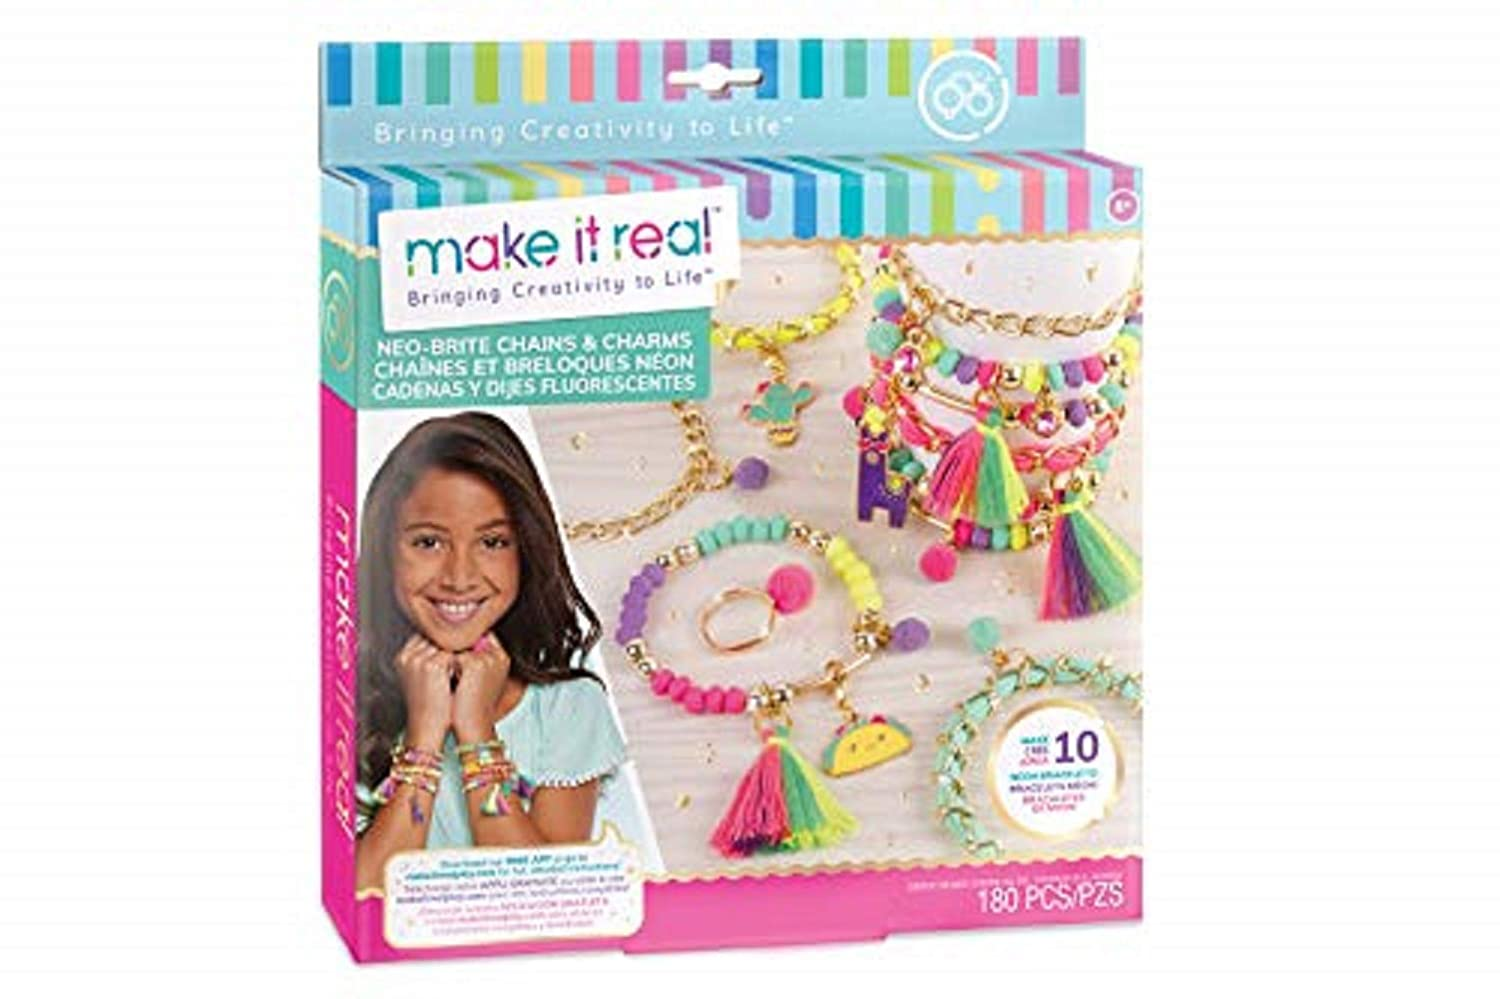 and Gold Chains Arts and Crafts Kit to Create Unique Tween Bracelets with Neon Beads Unique Pom Charms DIY Gold Chain Charm Bracelet Making Kit for Girls Make It Real Neo-Brite Chains /& Charms